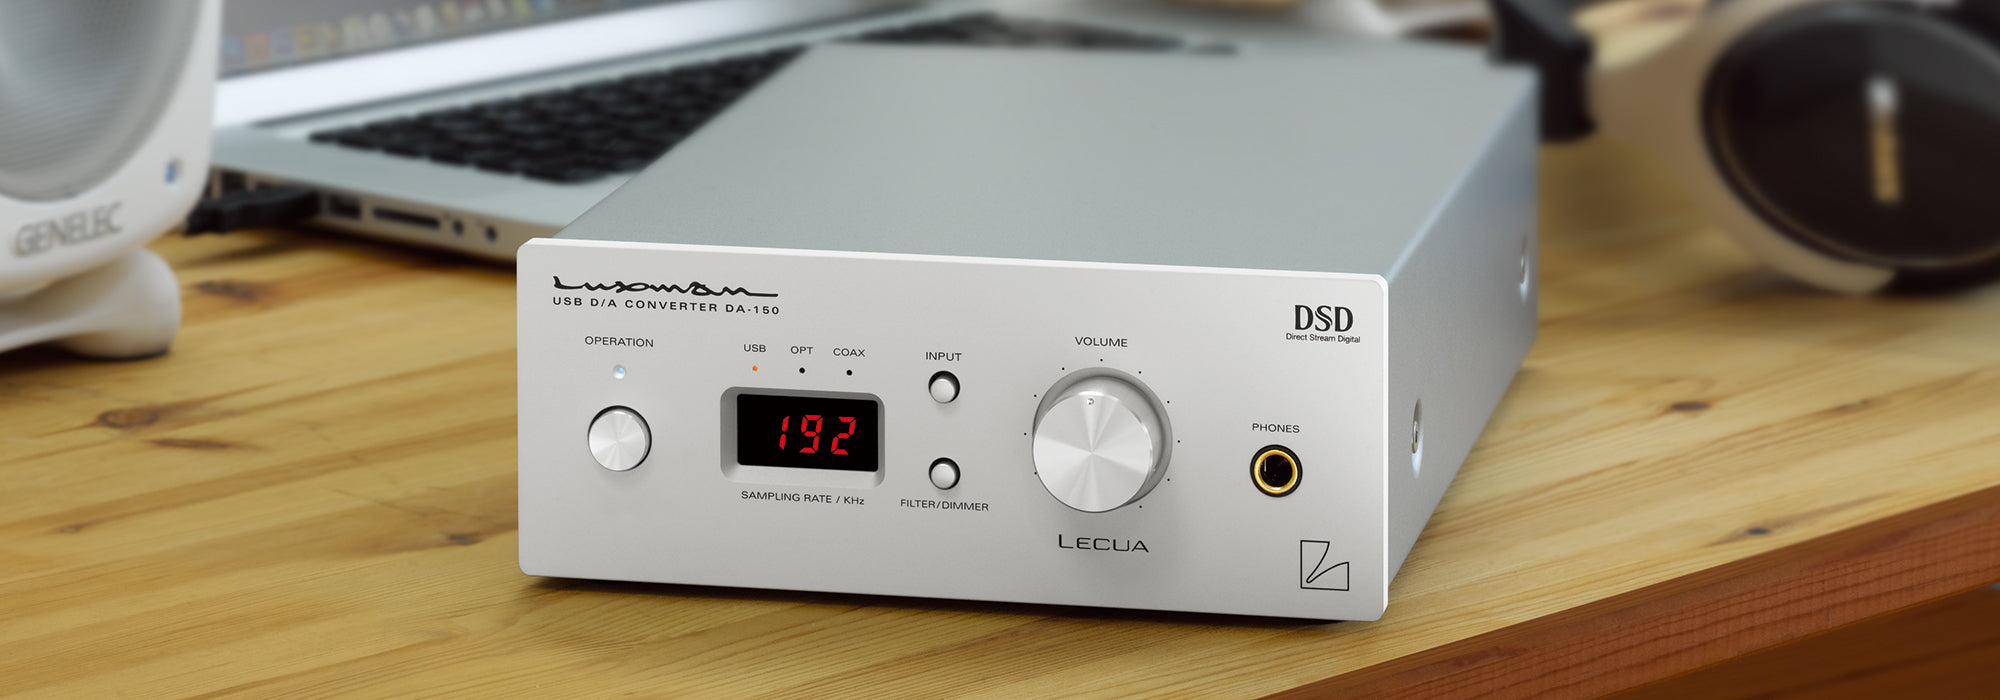 Luxman DA-150 USB Digital to Analog Converter